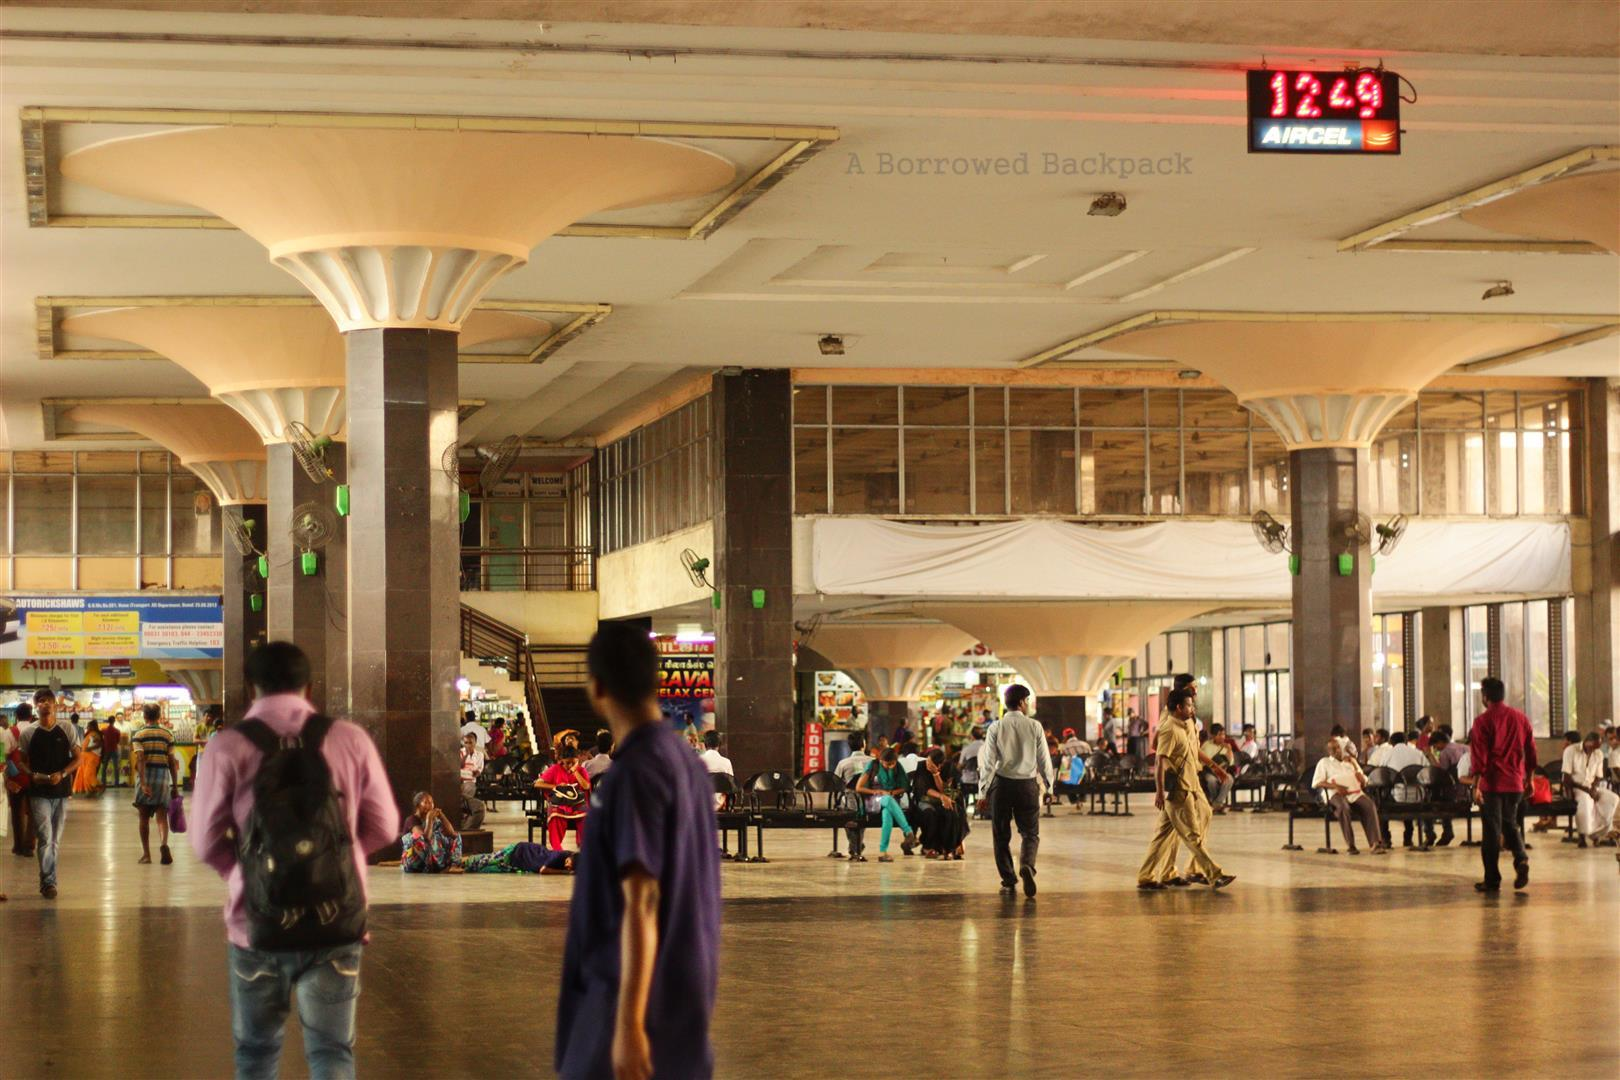 Chennai bus station